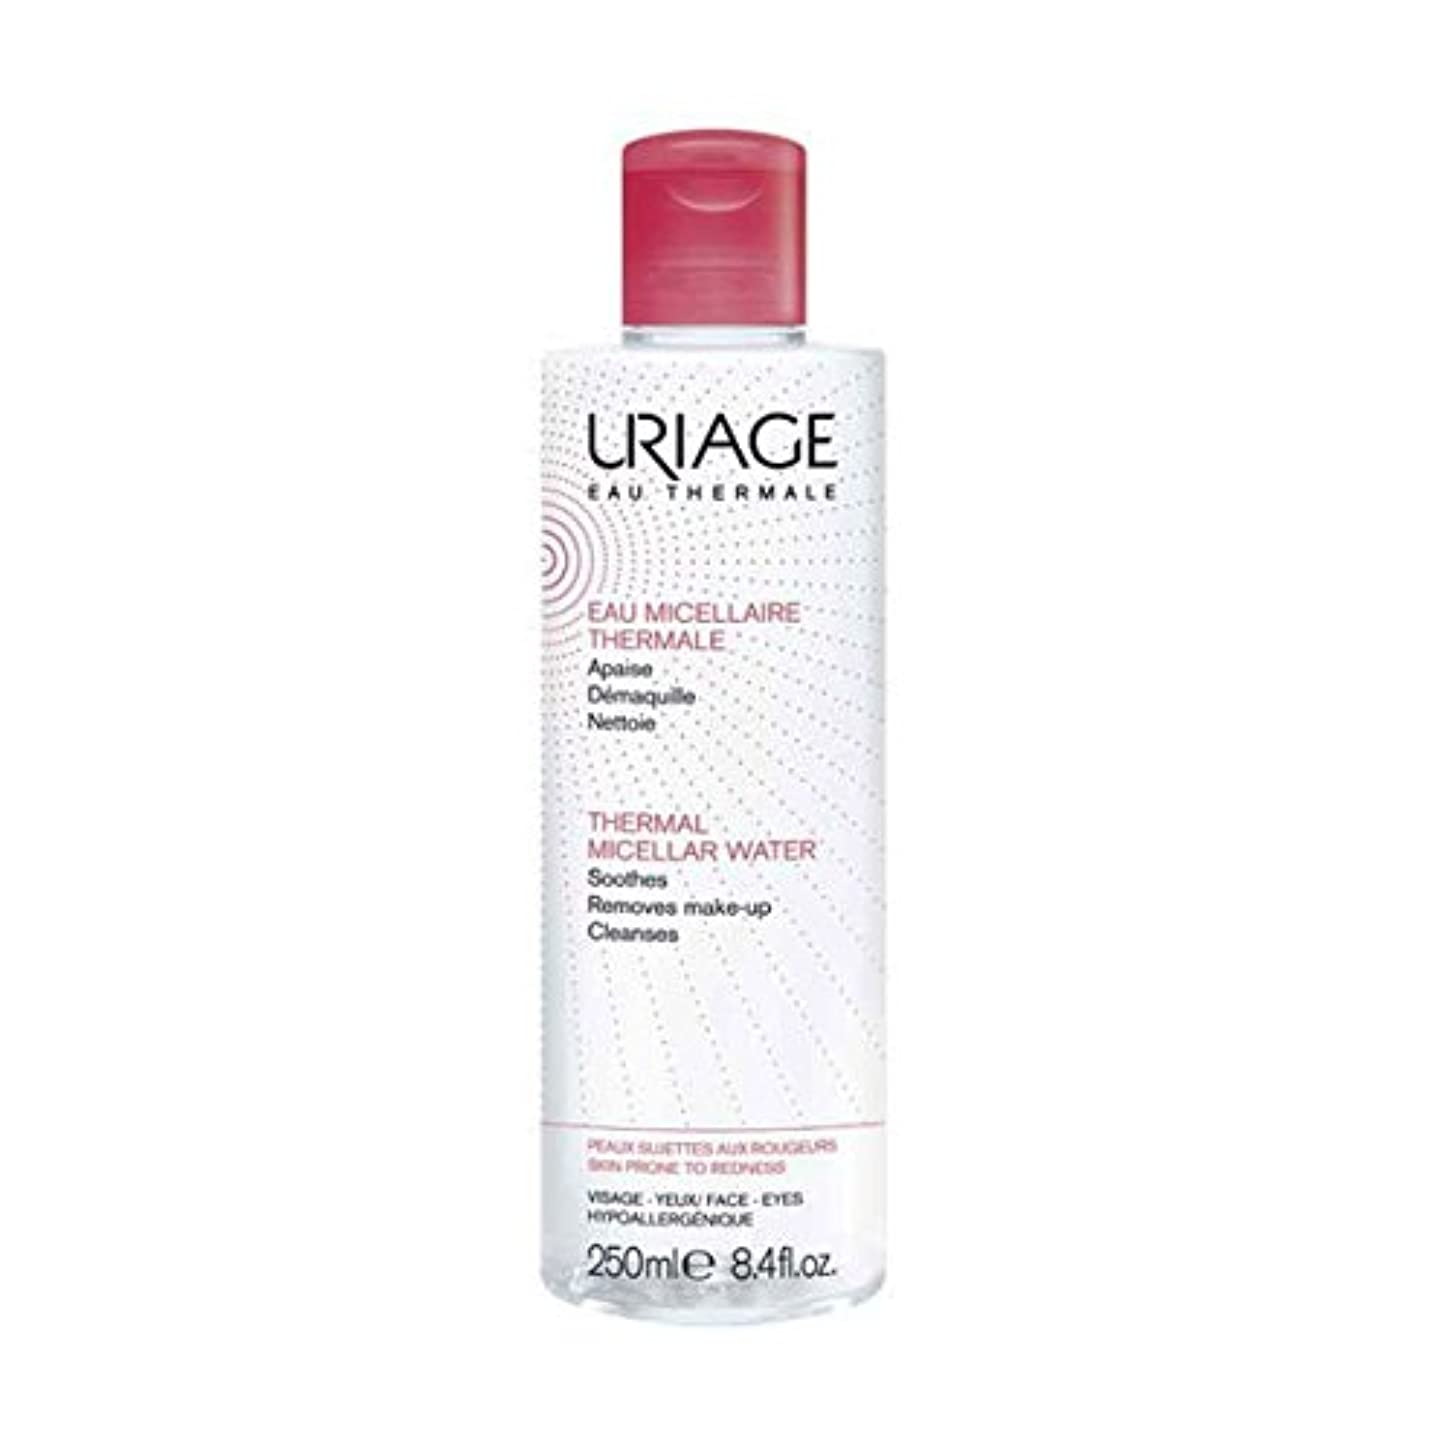 容疑者祭司警官Uriage Thermal Micellar Water Skin Prone To Redness 250ml [並行輸入品]